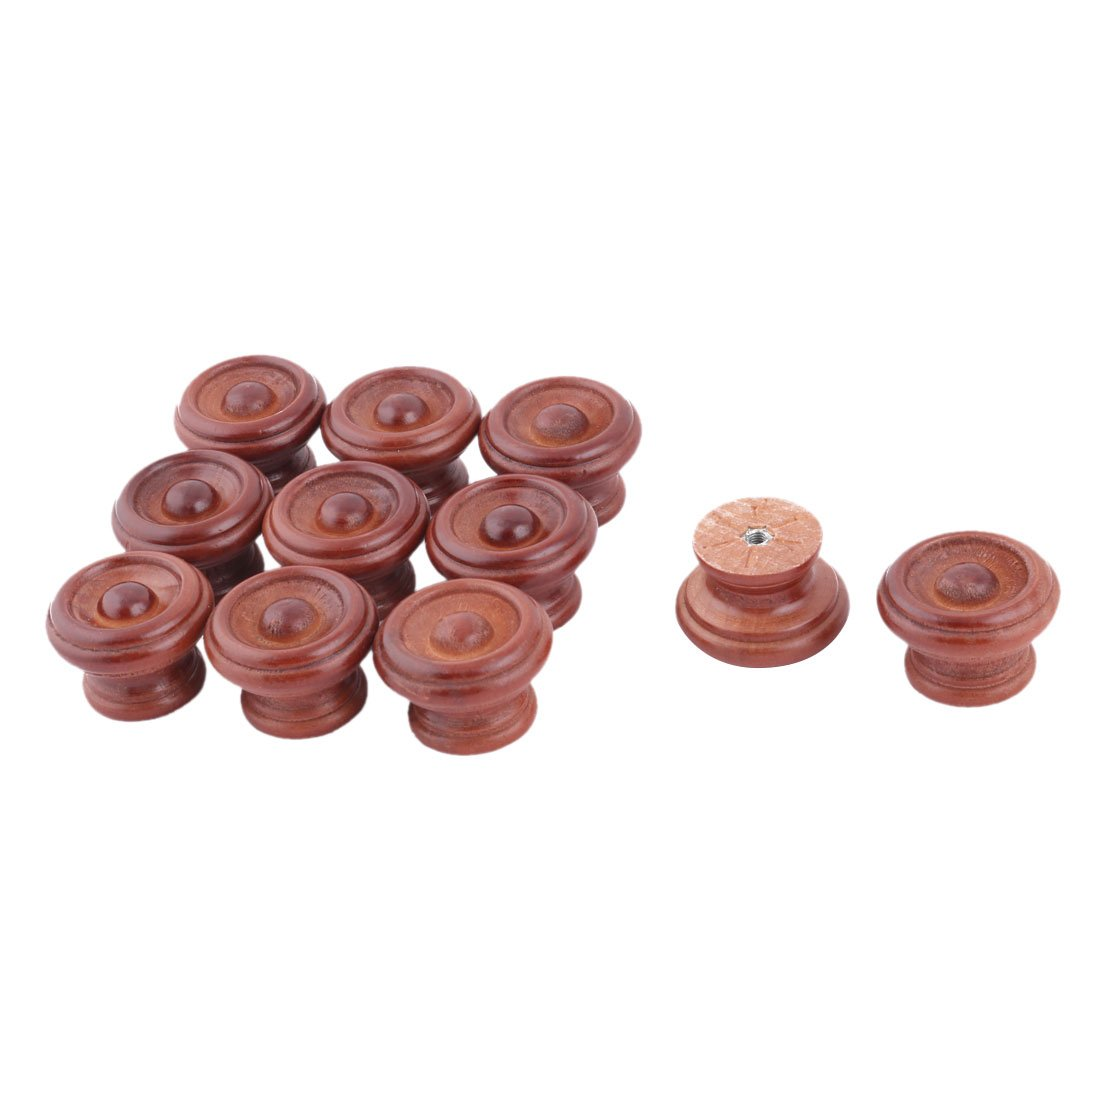 uxcell Wood Apartment Round Cabinet Door Pull Handle Grip Knob 1.5 Inch Dia 11 Pcs